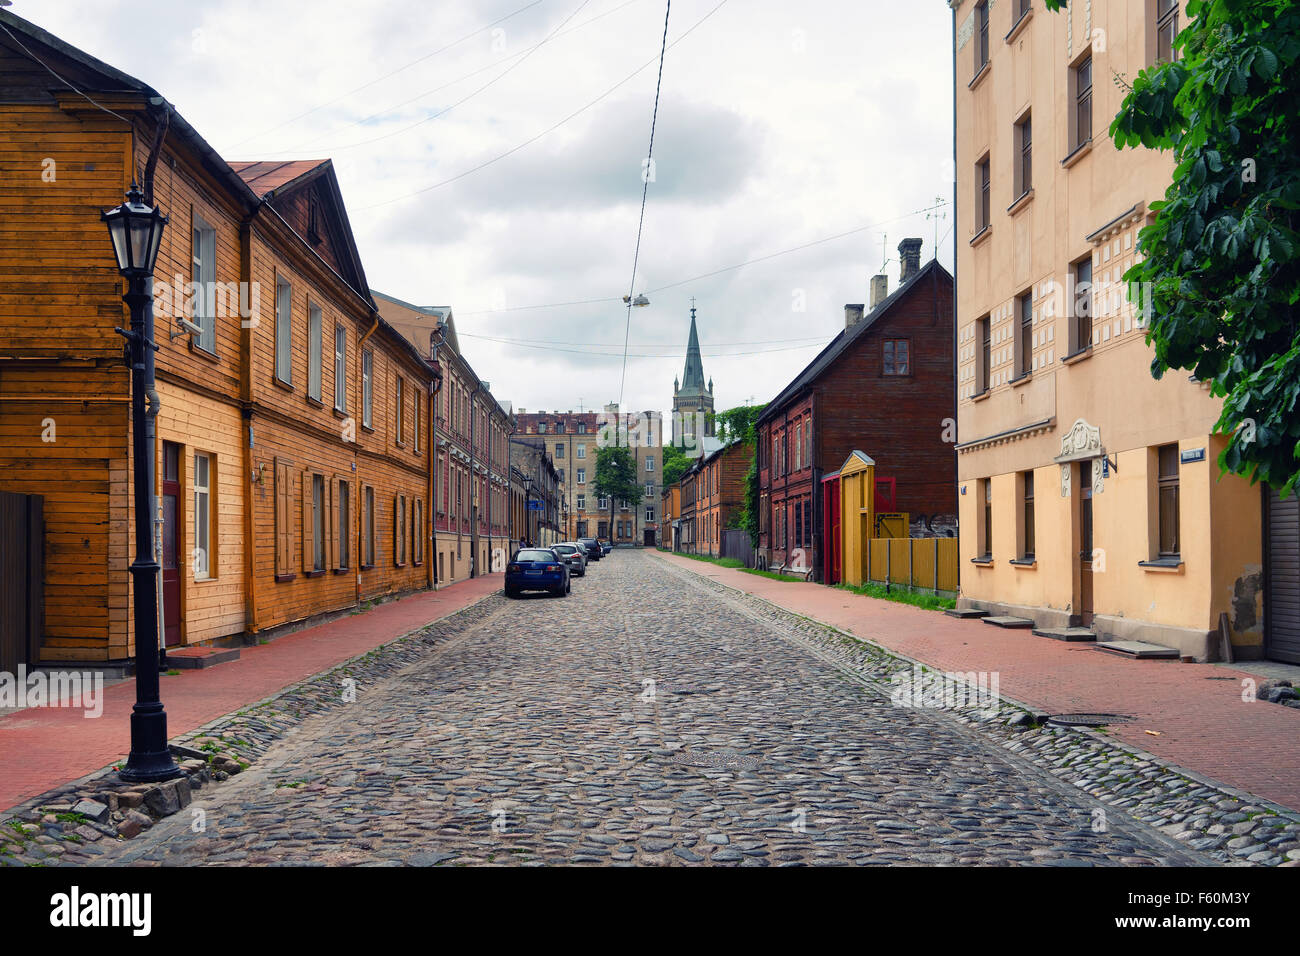 Old street with red sidewalks and paving stones on the road in the old city of Riga in spring. Murnieku iela, Riga, - Stock Image